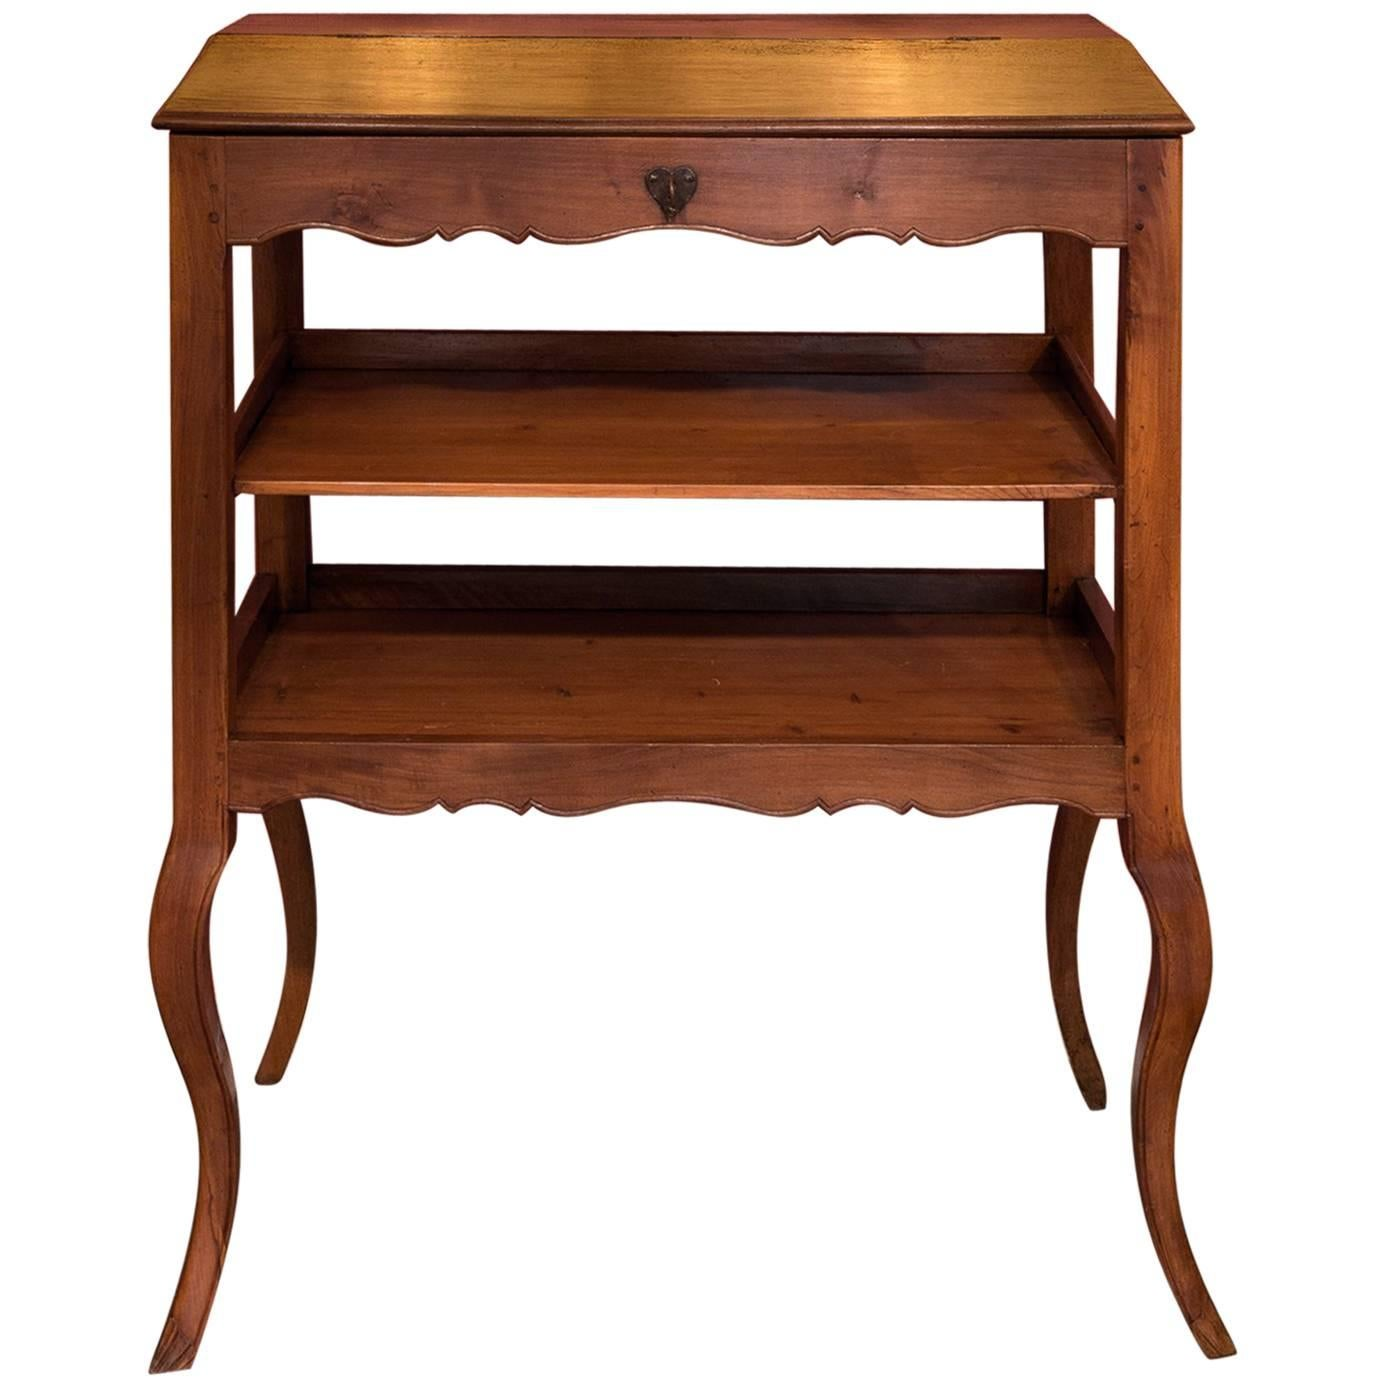 Walnut office furniture American Style Mid18th Century Provencal Notarial Office Furniture In Solid Walnut Circa 1750 For Sale Aliexpress Mid18th Century Provencal Notarial Office Furniture In Solid Walnut